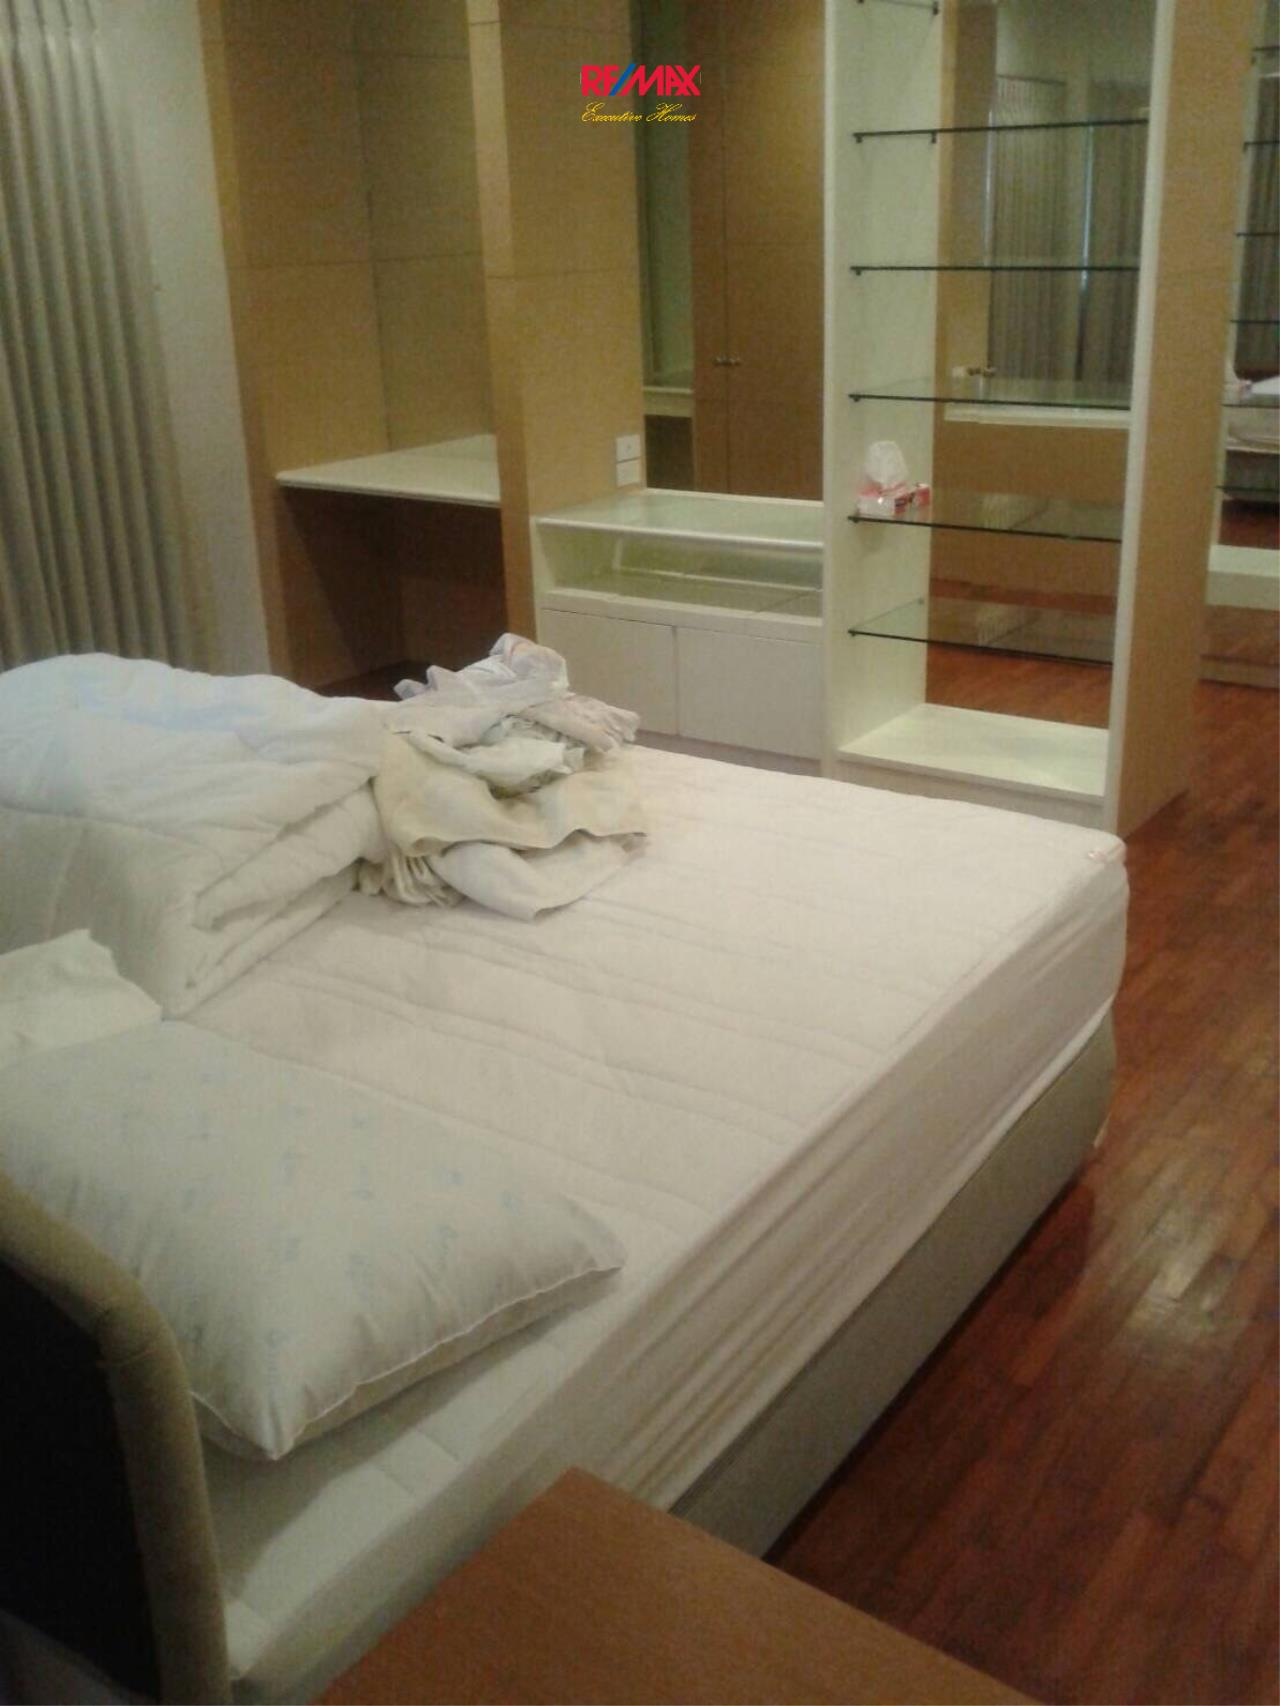 RE/MAX Executive Homes Agency's Spacious 2 Bedroom for Rent Baan Sansiri 2